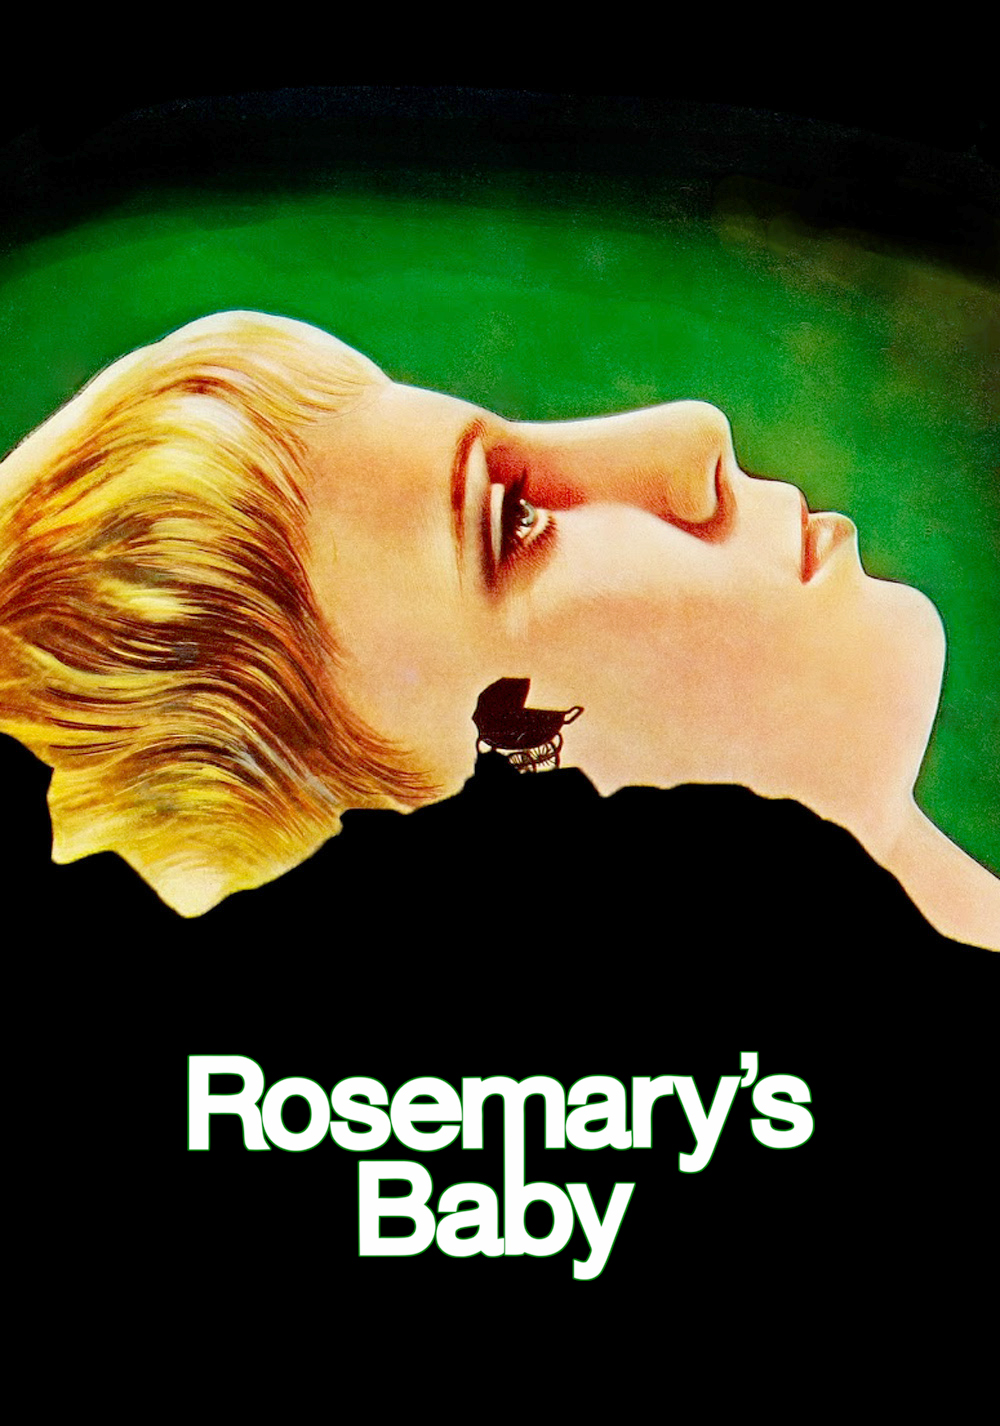 Rosemary's Baby Fan Art